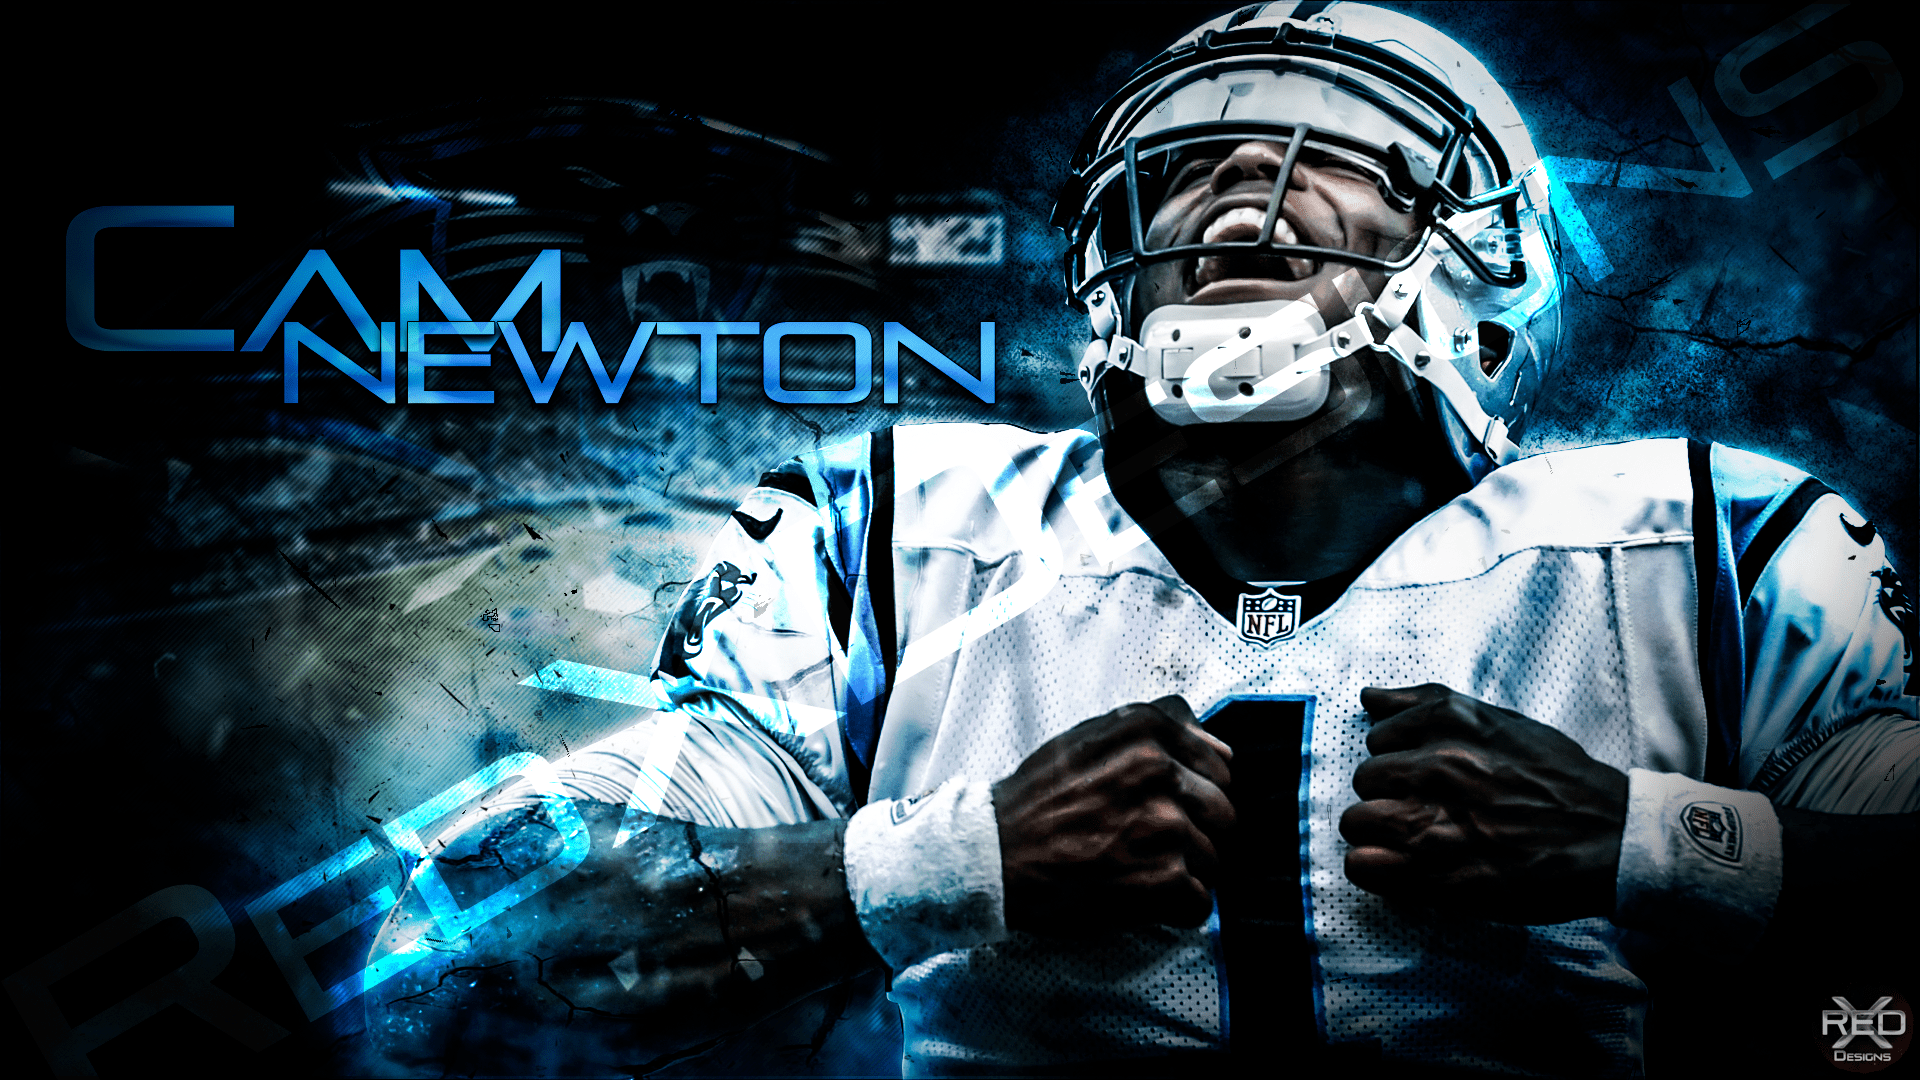 Iphone 5 Wallpaper Superman Cam Newton Full Hd Wallpaper And Background 1920x1080